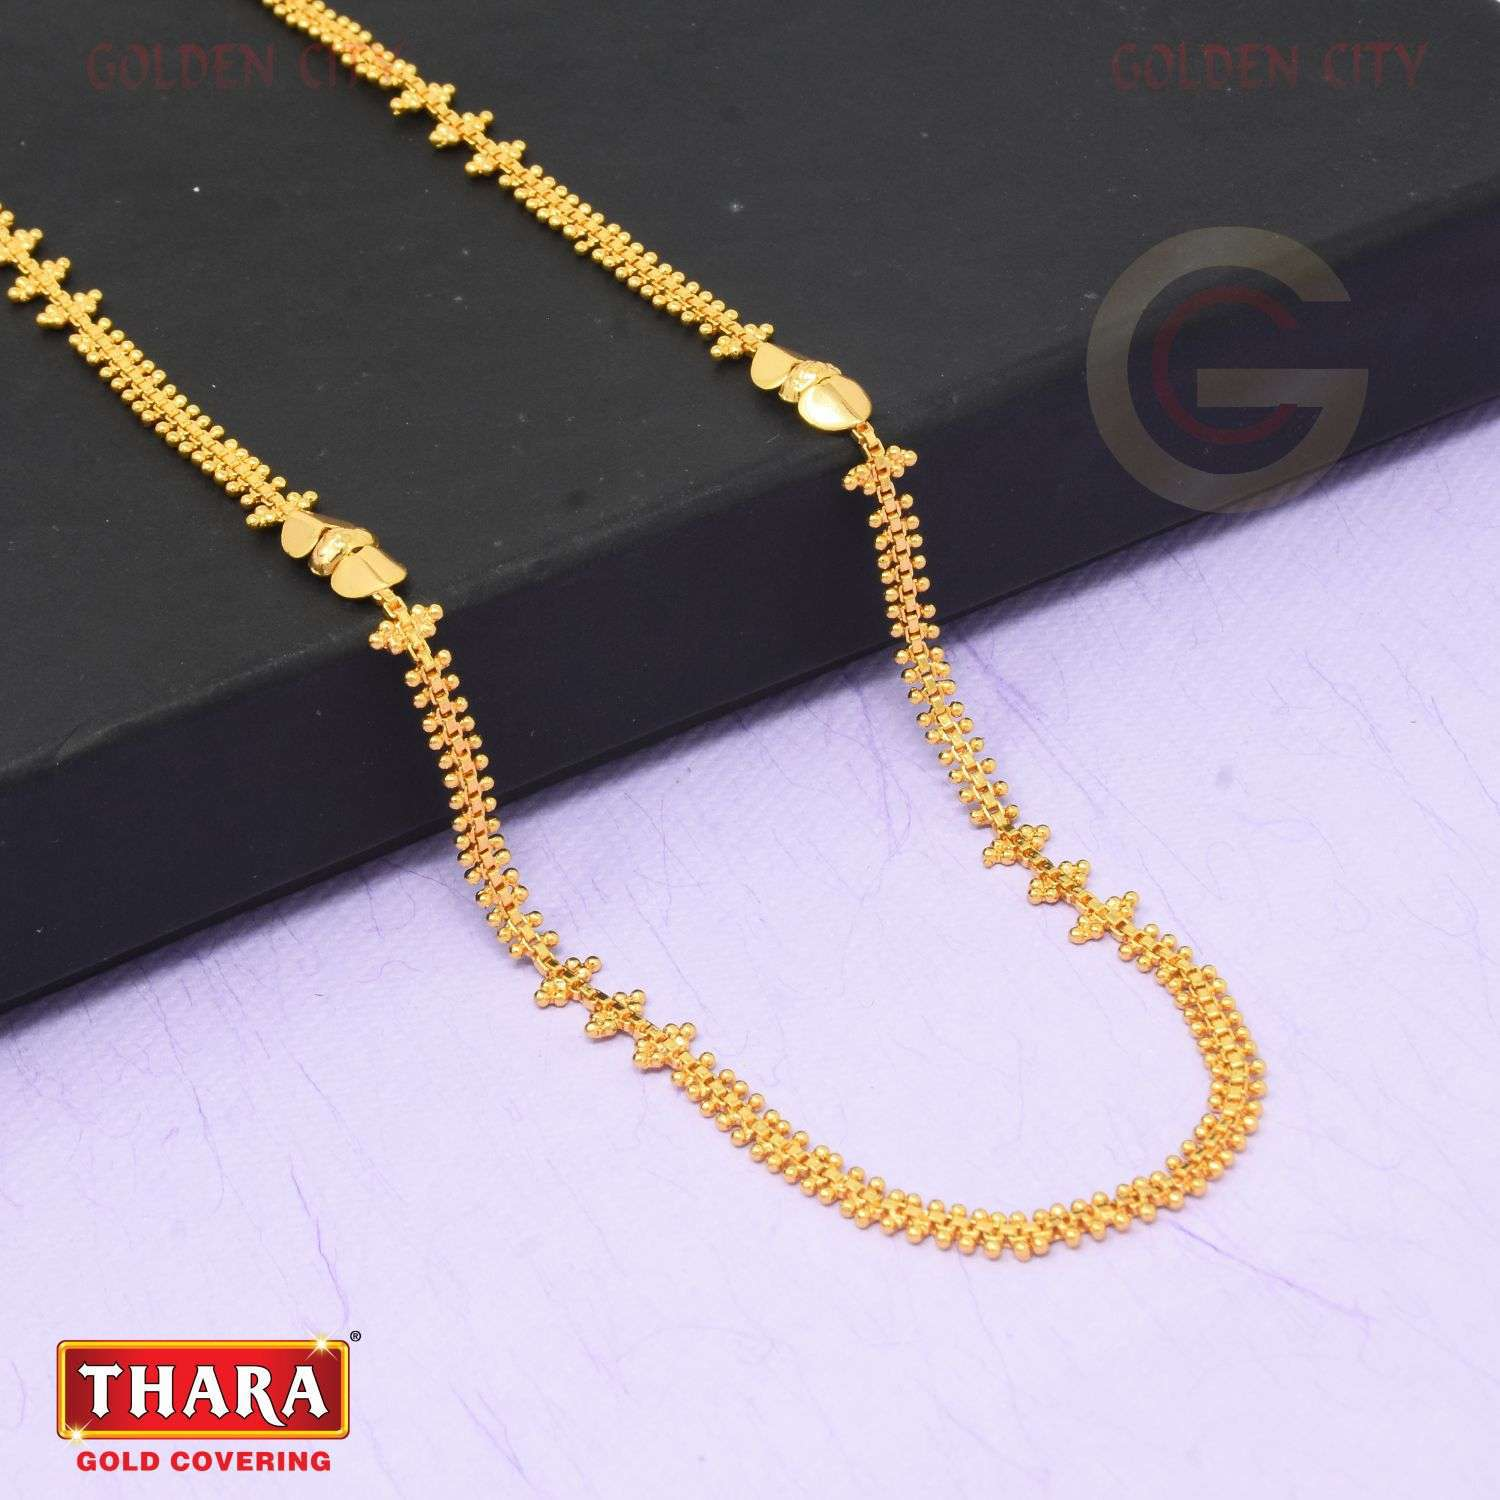 24 RAJCOT HEART Fancy chain